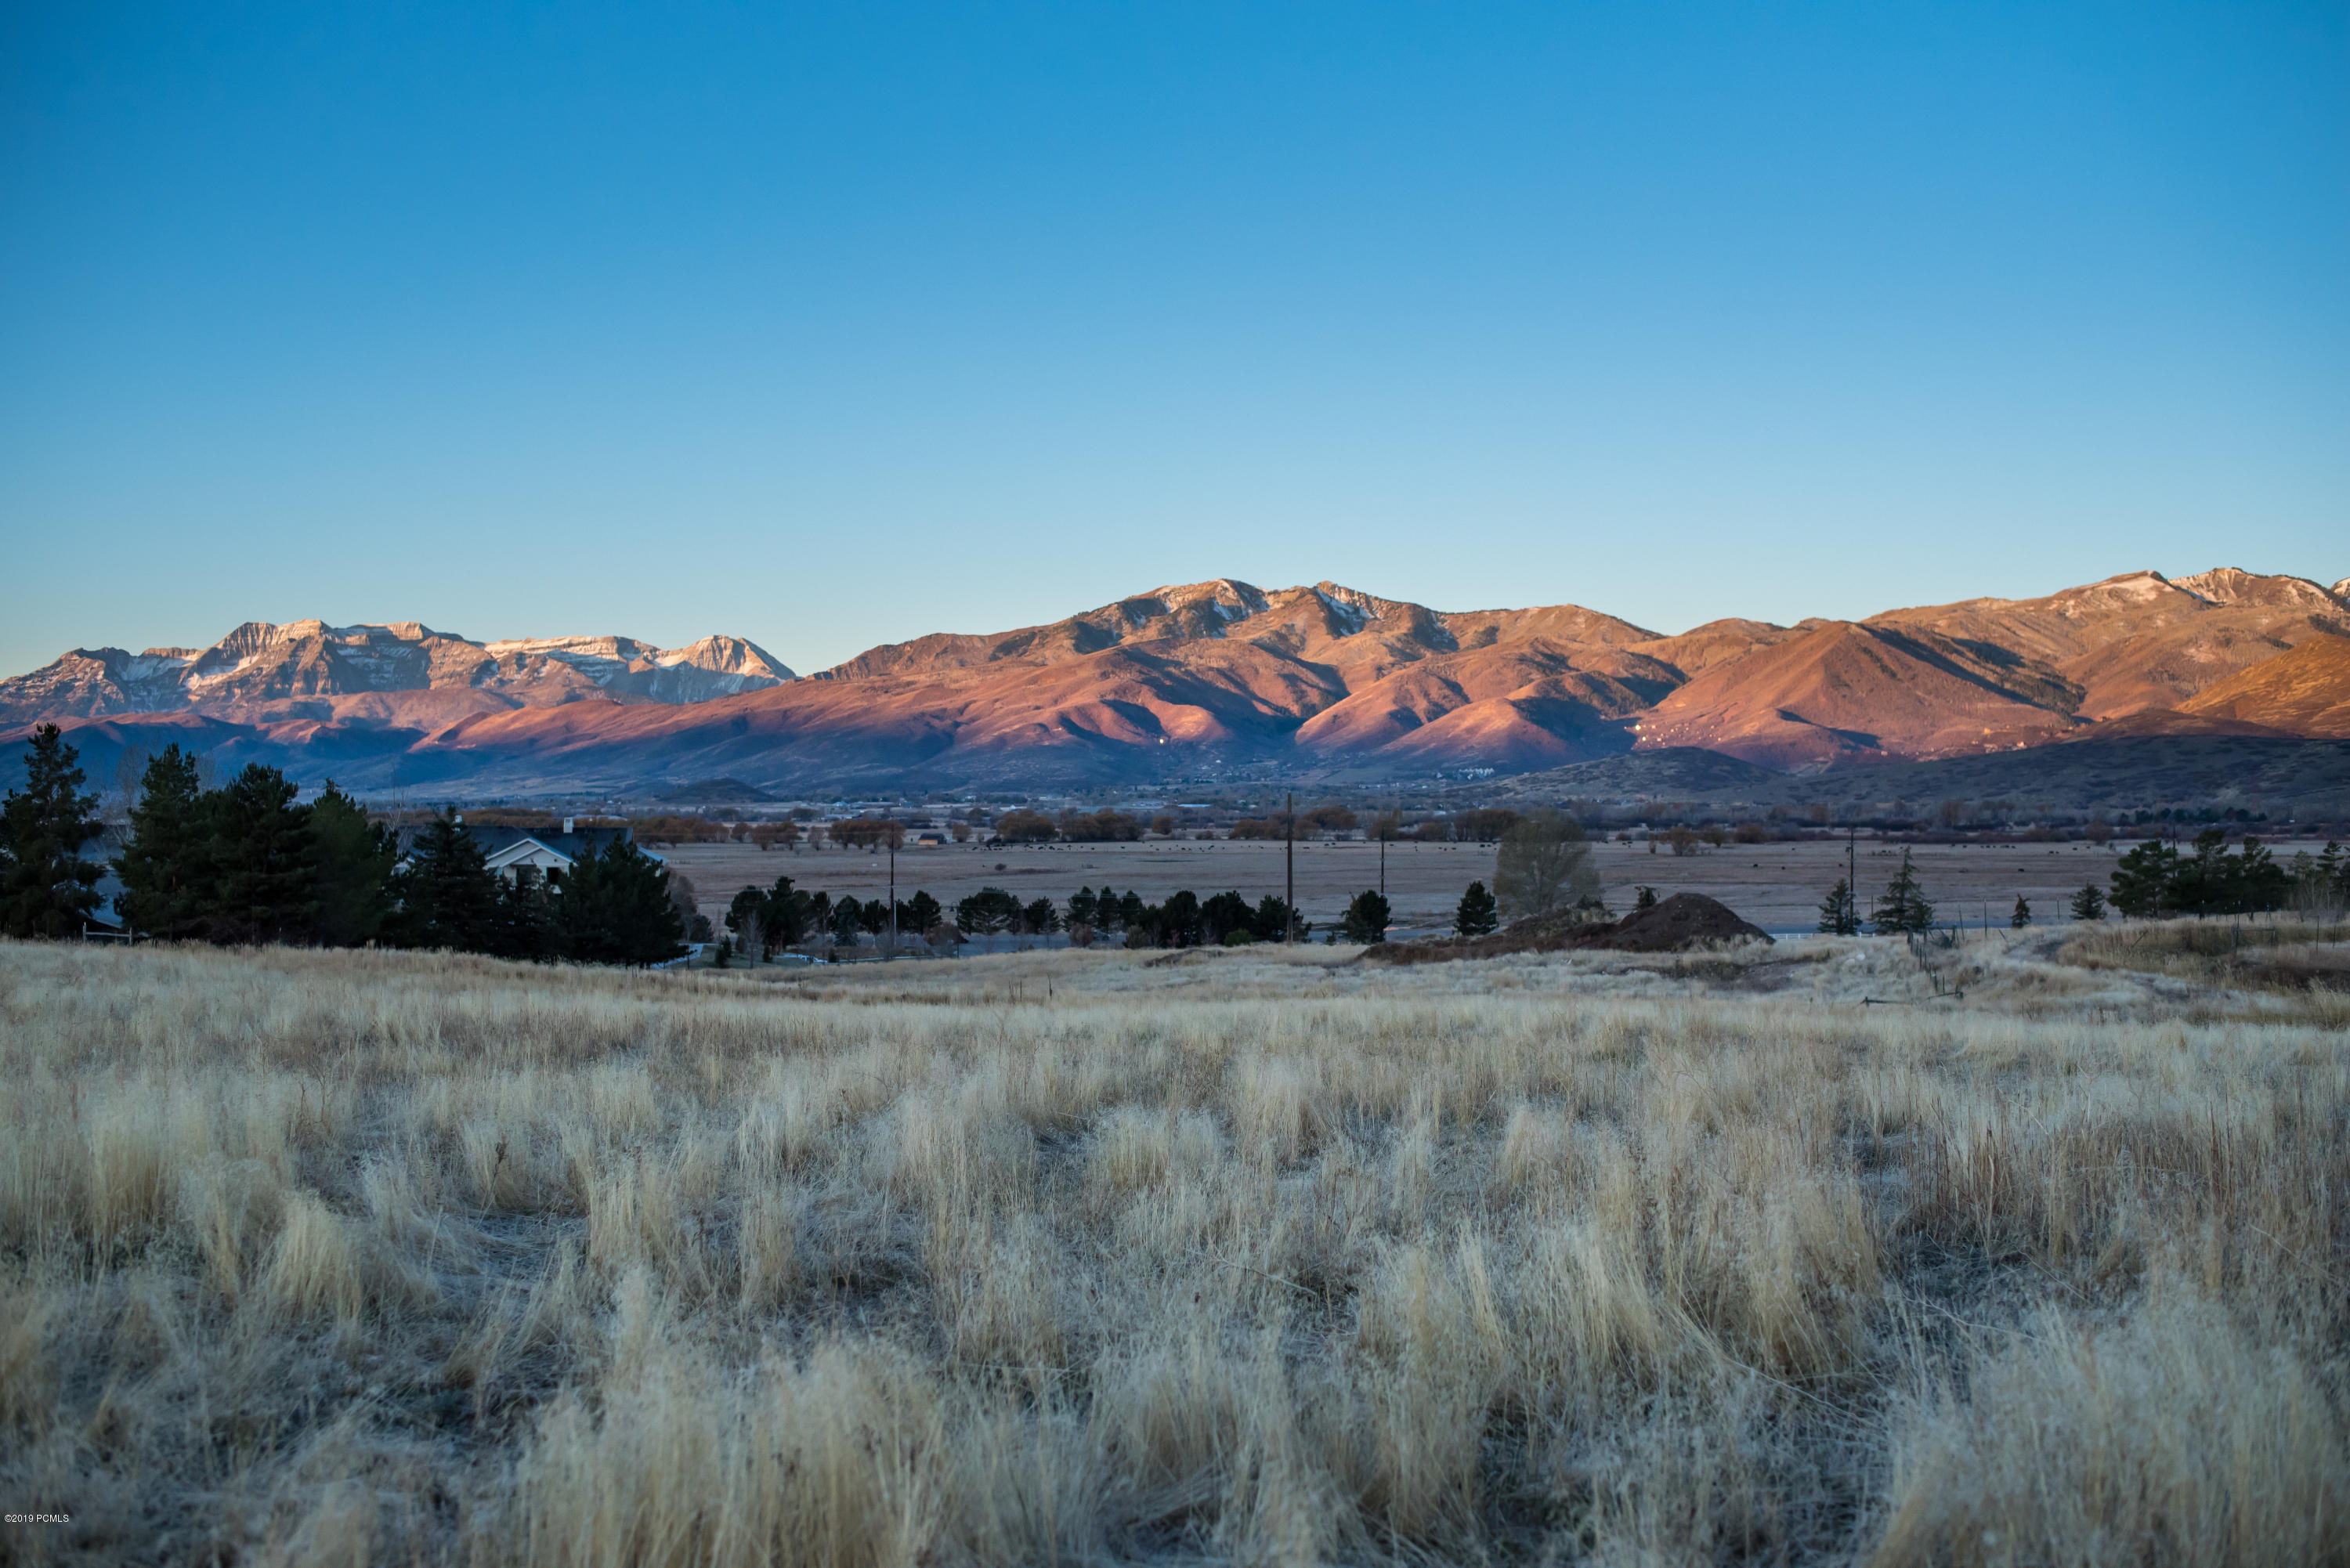 1019 Tatton Park Drive, Heber City, Utah 84032, ,Land,For Sale,Tatton Park,20190109112430415765000000